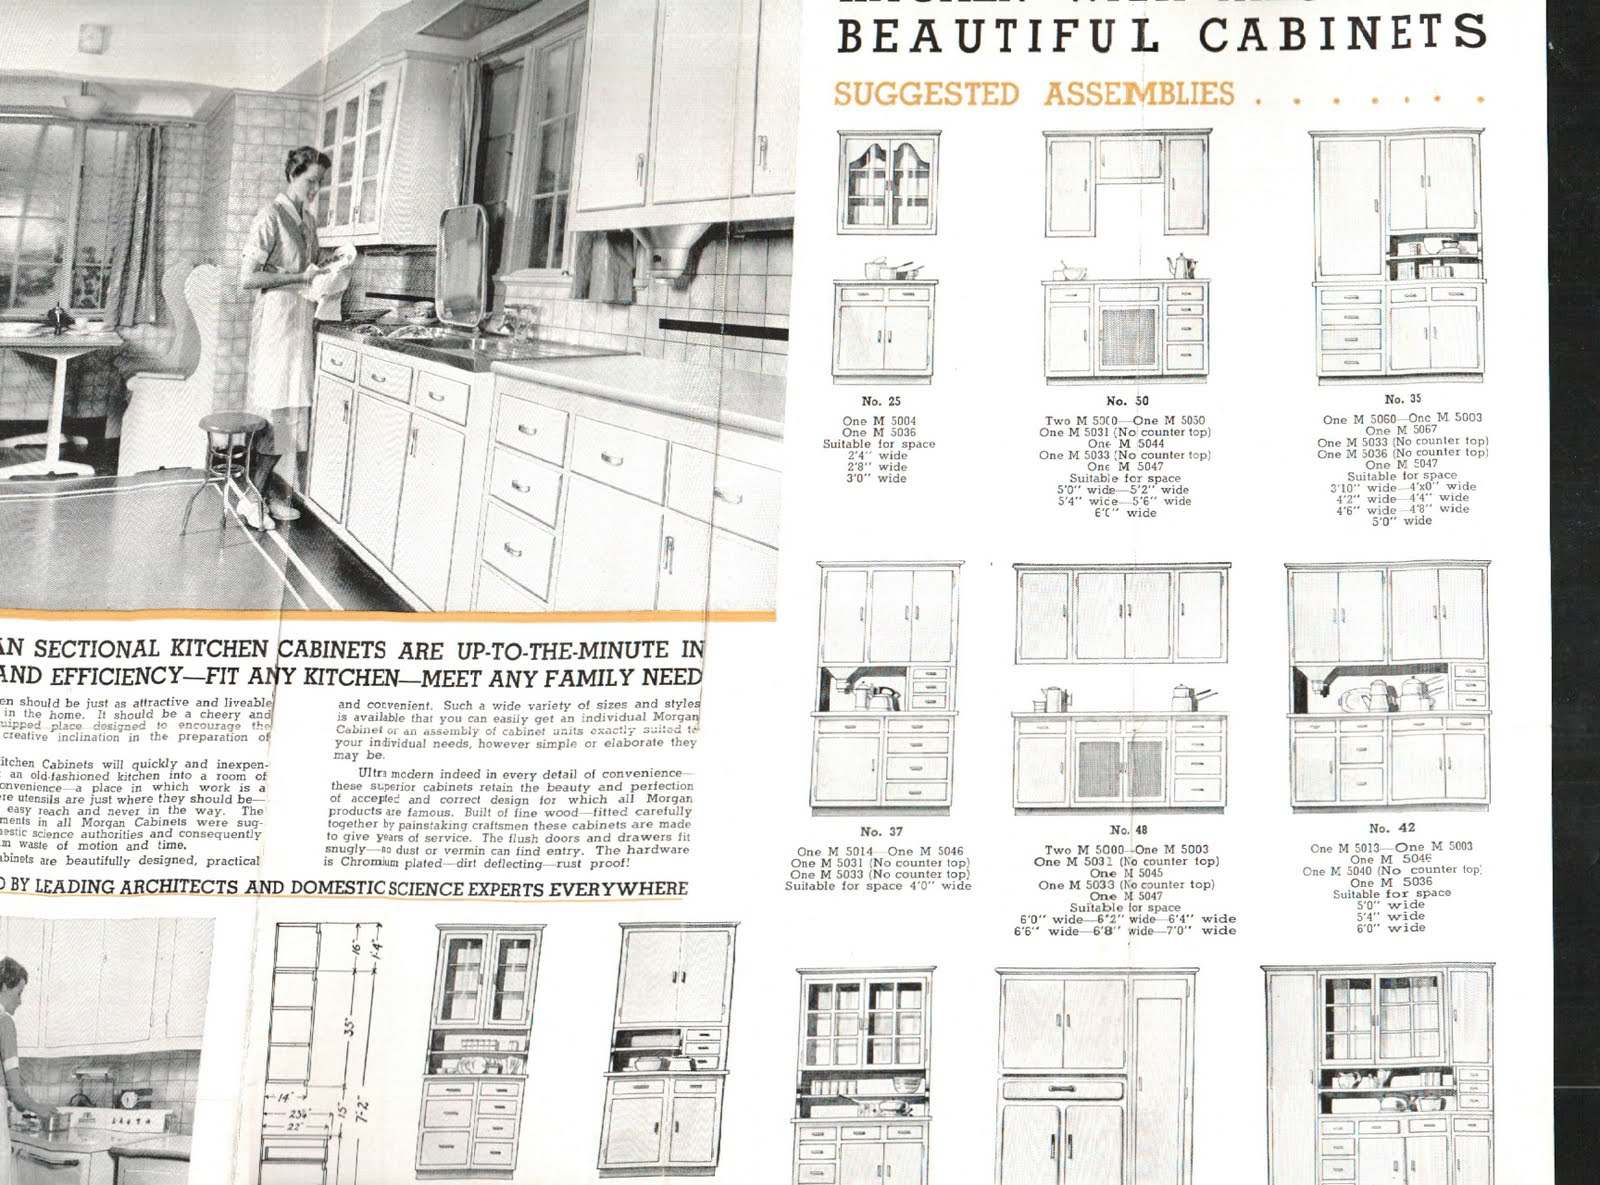 404 not found for 1930s kitchen cabinets for sale